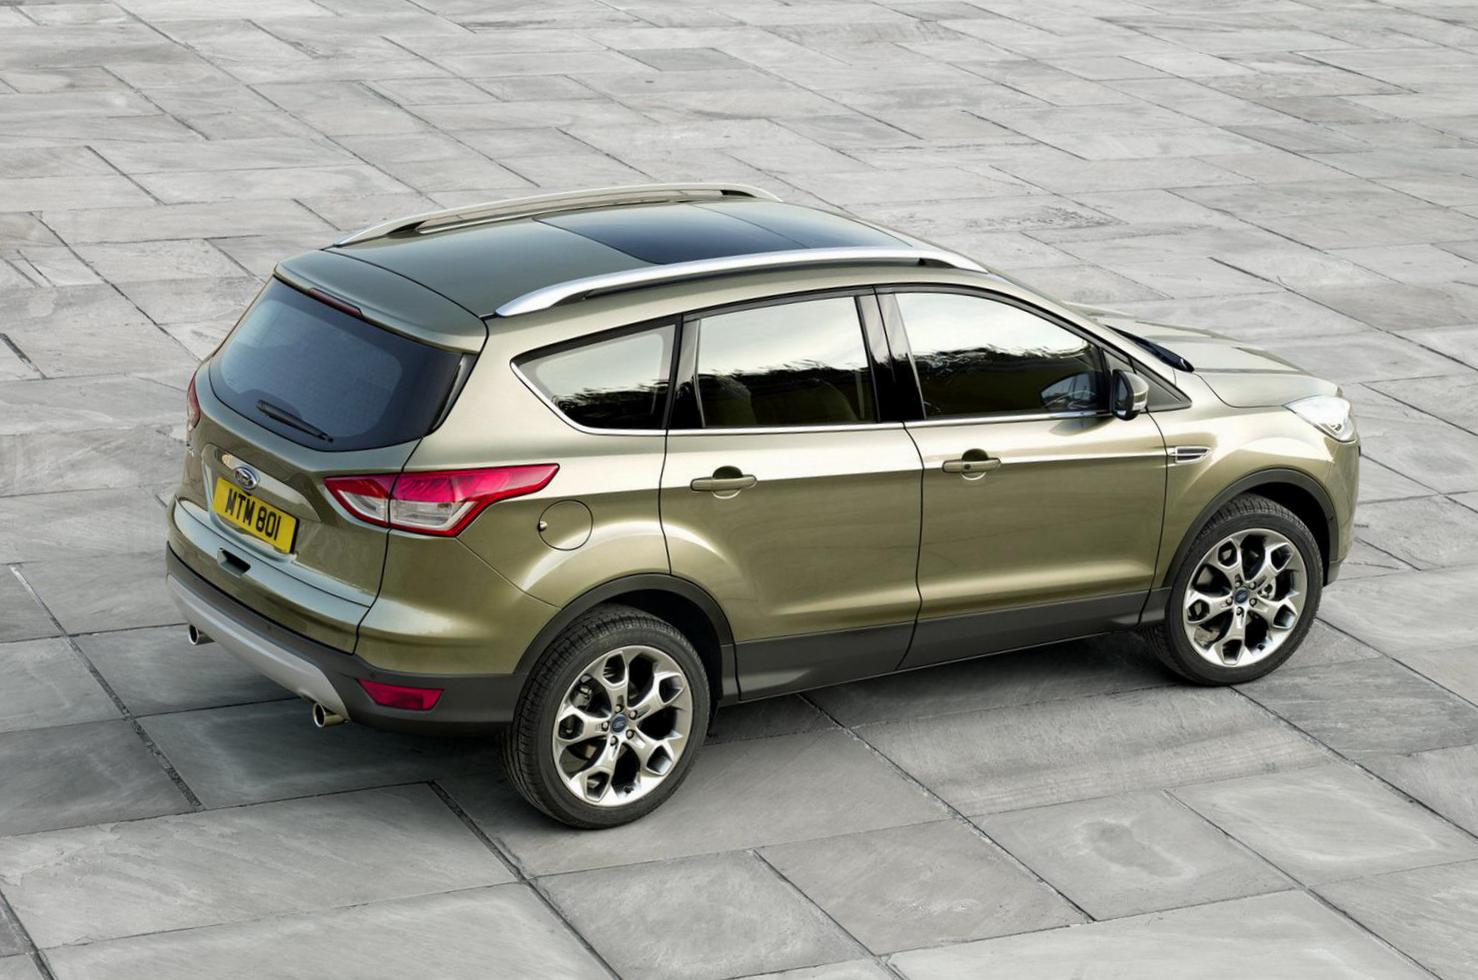 Ford Kuga for sale minivan